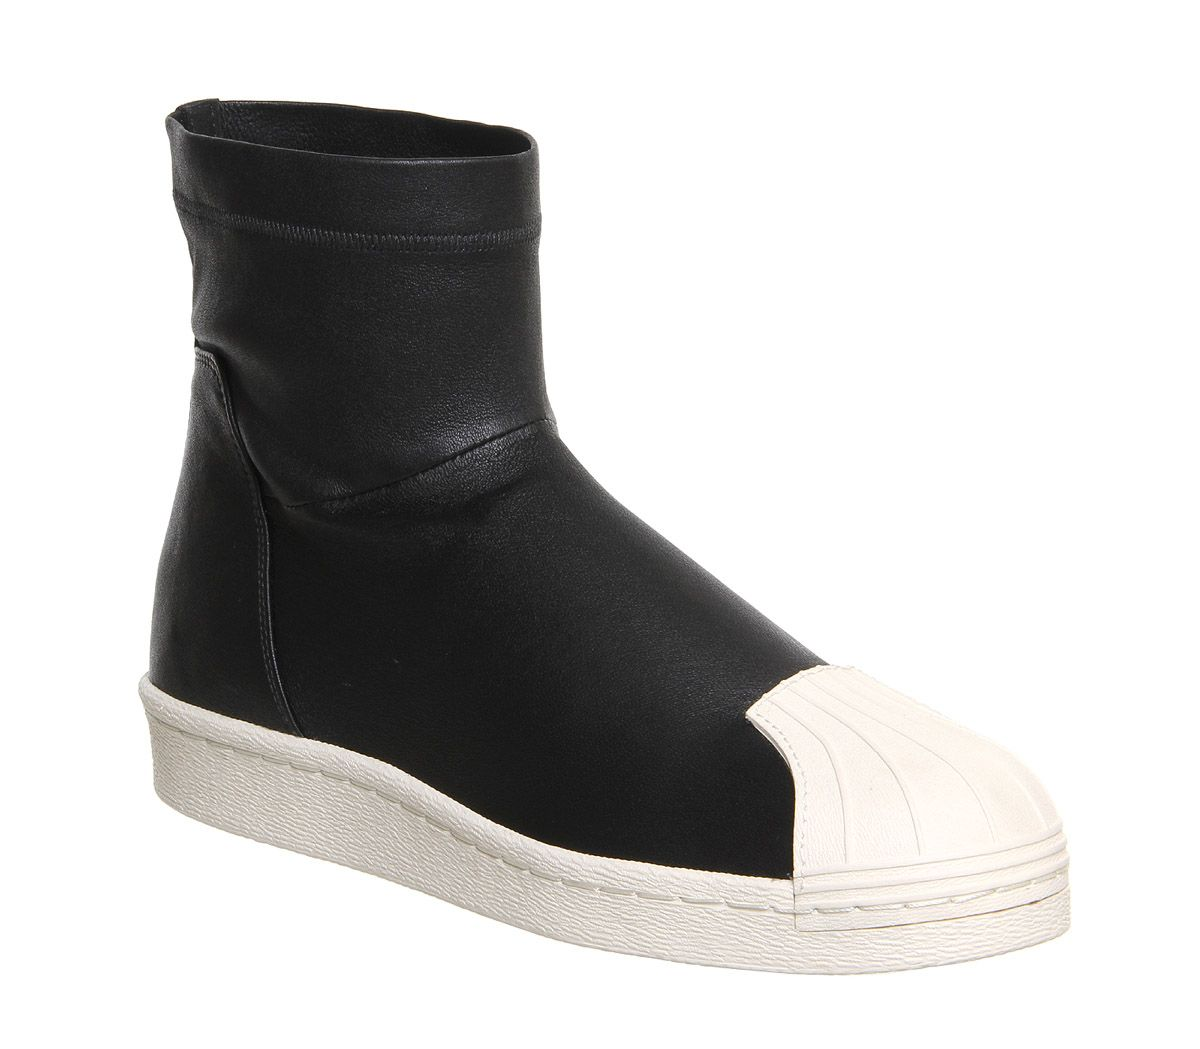 Adidas x Rick Owens Superstar Ankle Boot